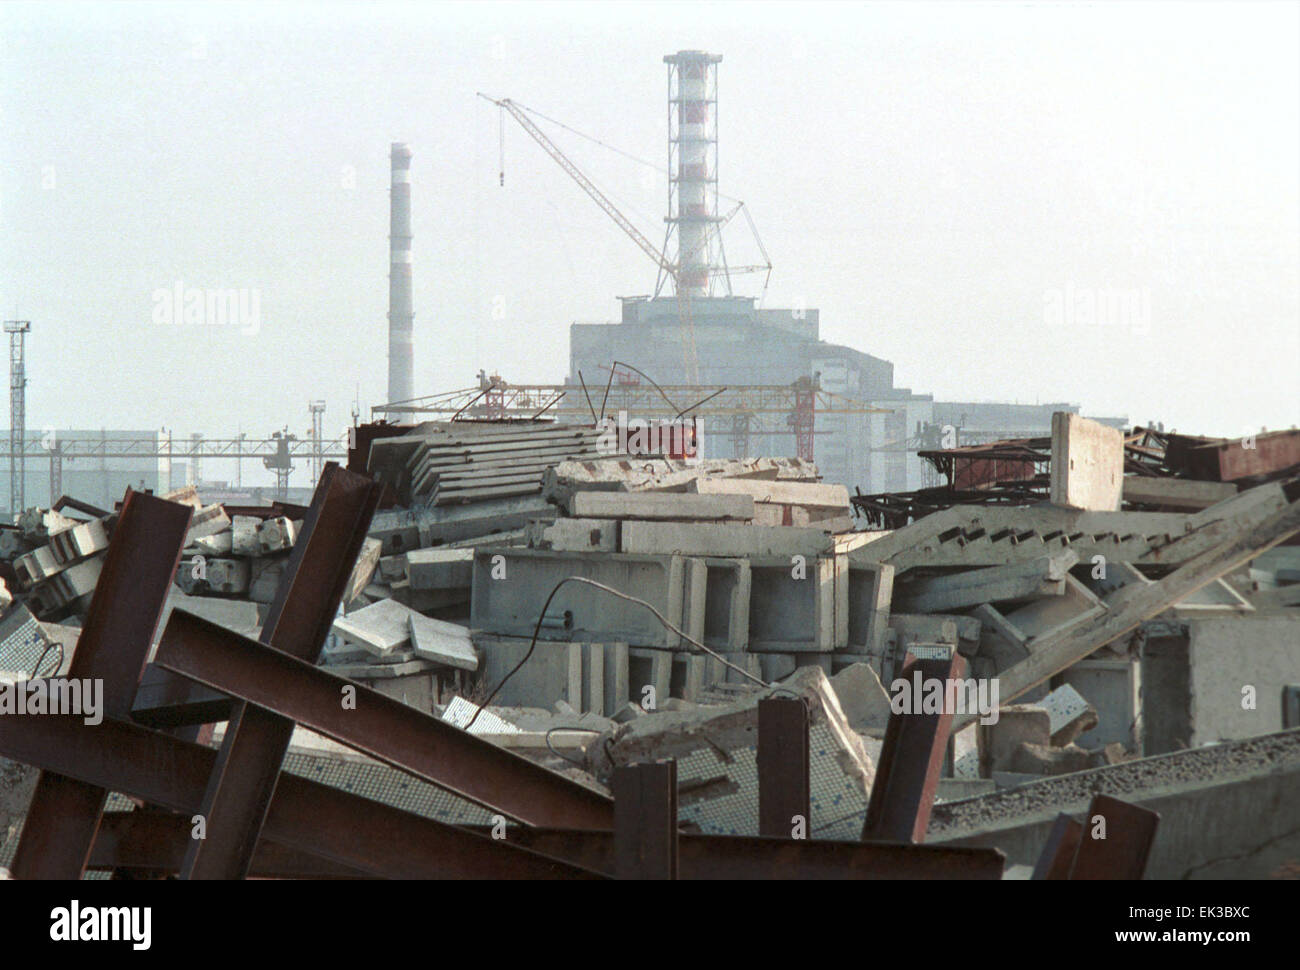 USSR, UKRAINE. The Chernobyl Nuclear Power Plant five years after the April 1986 disaster. The power plant consists - Stock Image